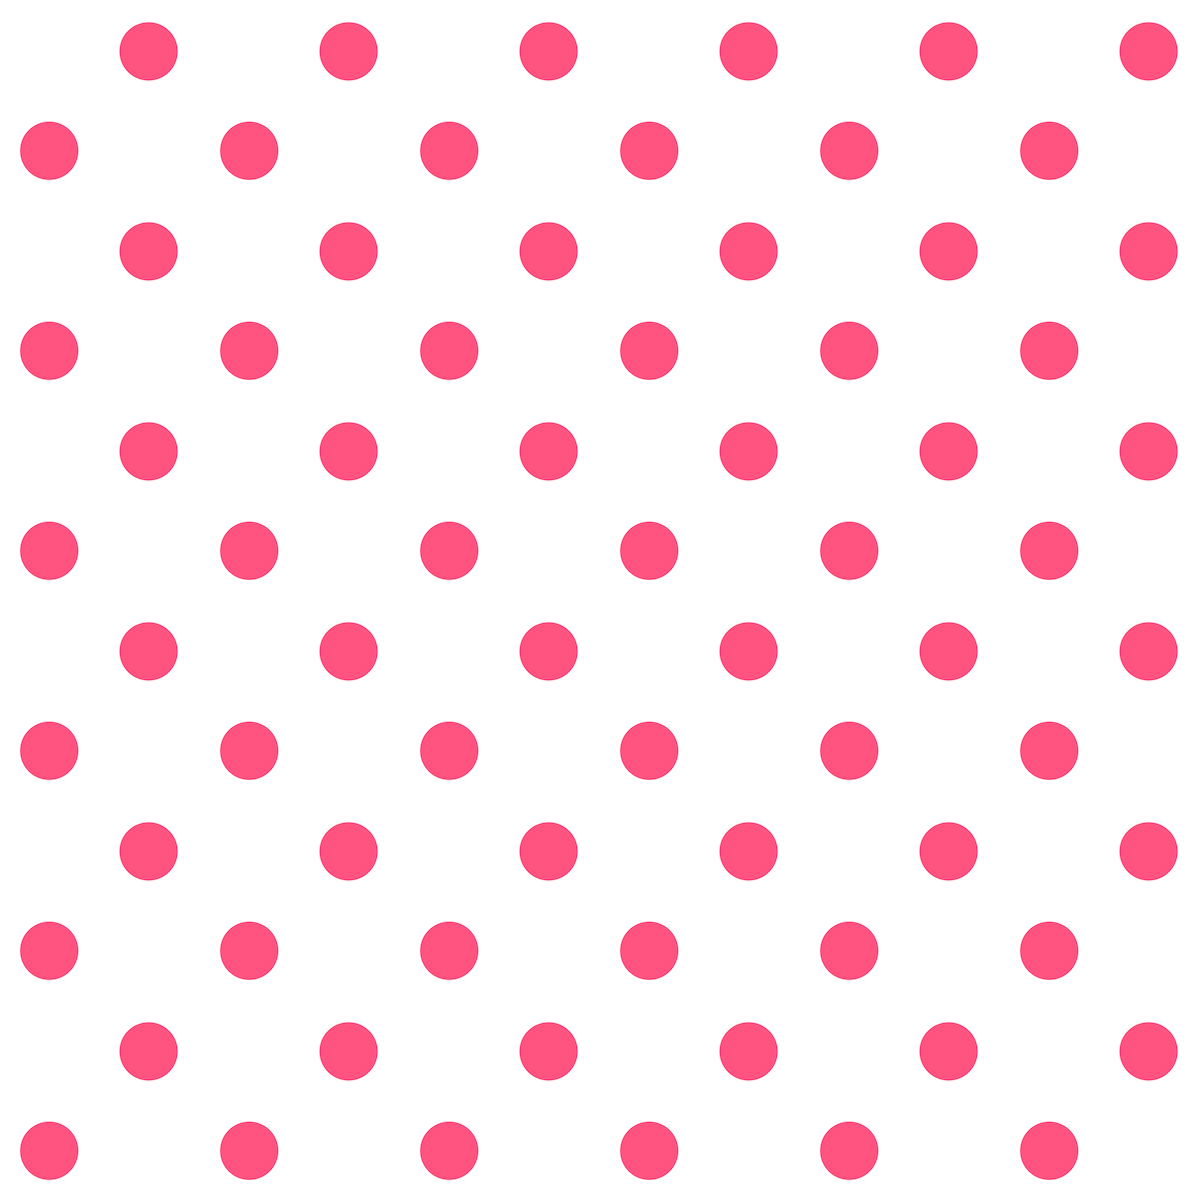 Free digital polka dot scrapbooking papers ausdruckbare for Red and white polka dot pattern